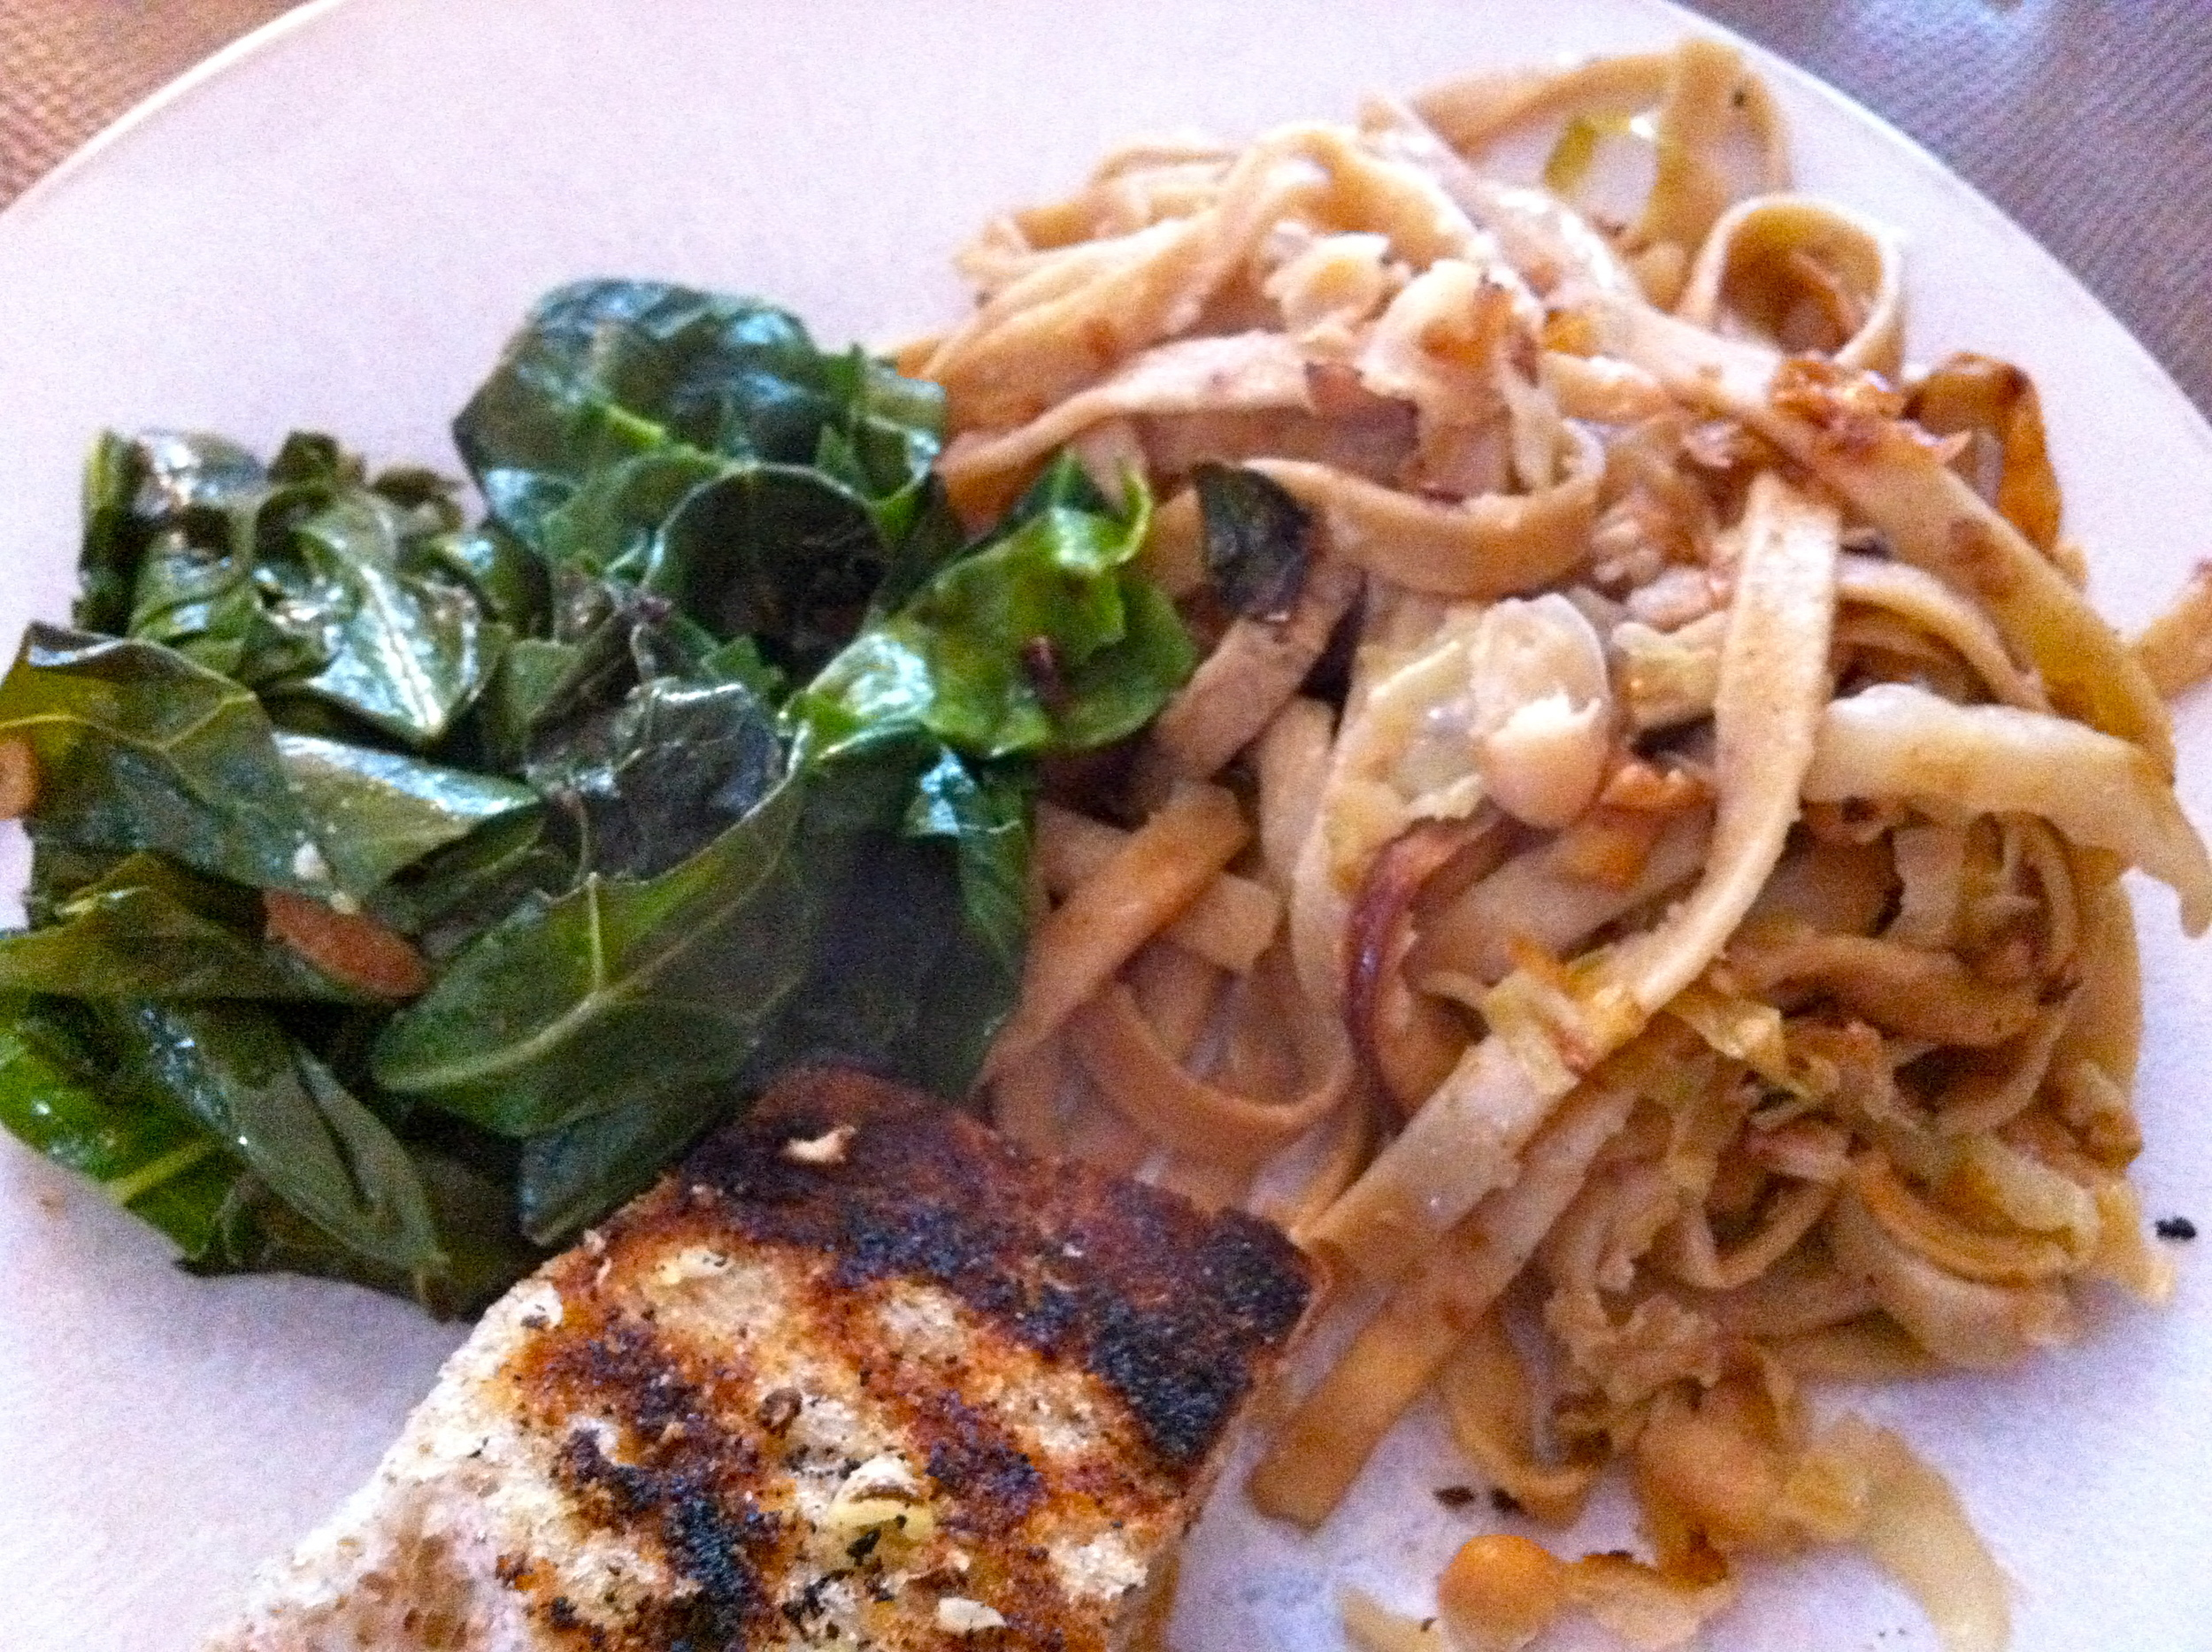 This mushroom pasta was delicious and perfect with greens and garlic bread.